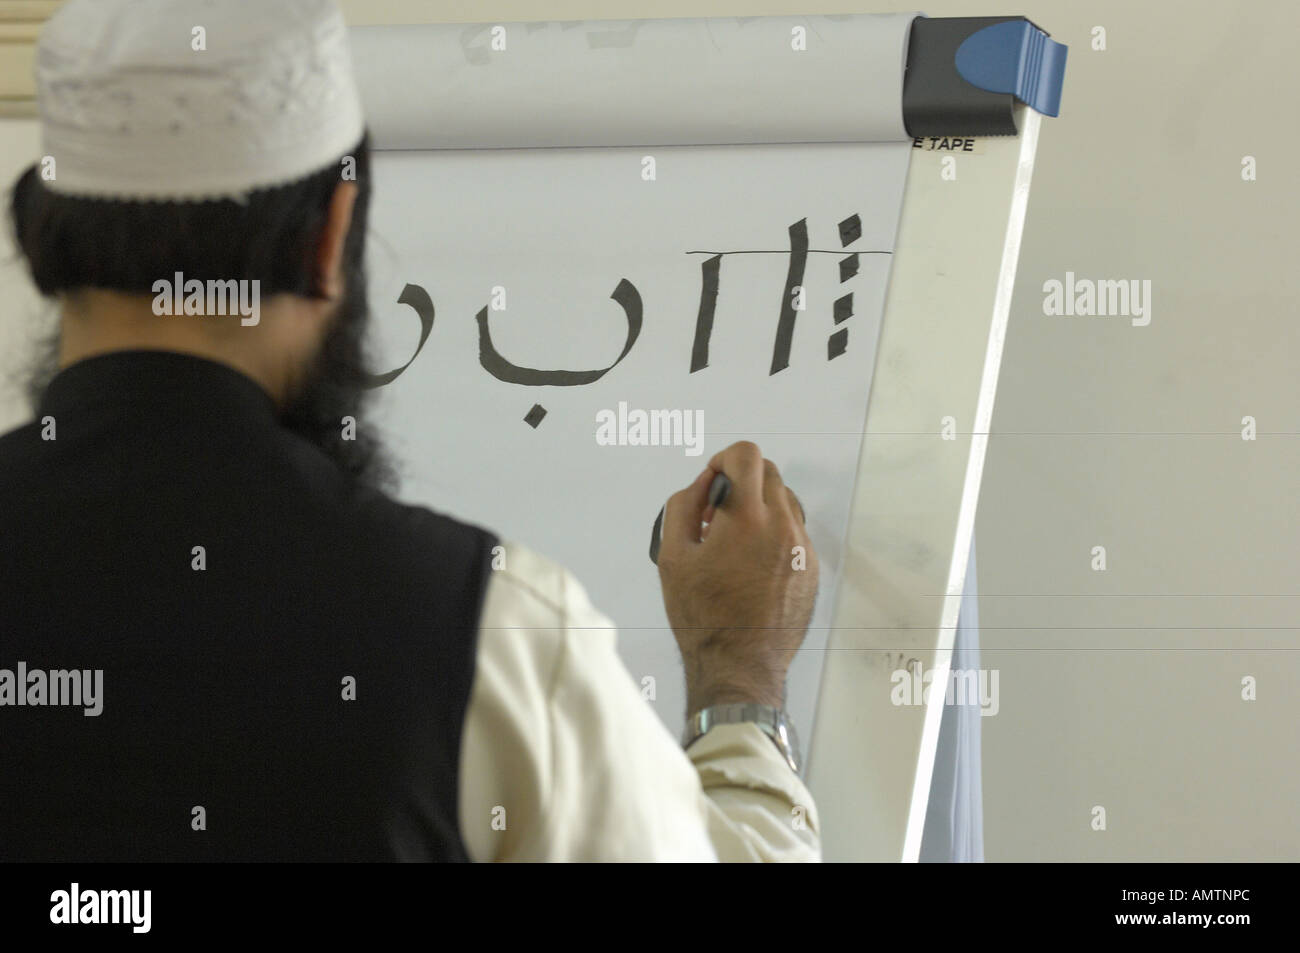 Calligraphie Arabe Clavier Écriture Arabe Photos Écriture Arabe Images Alamy